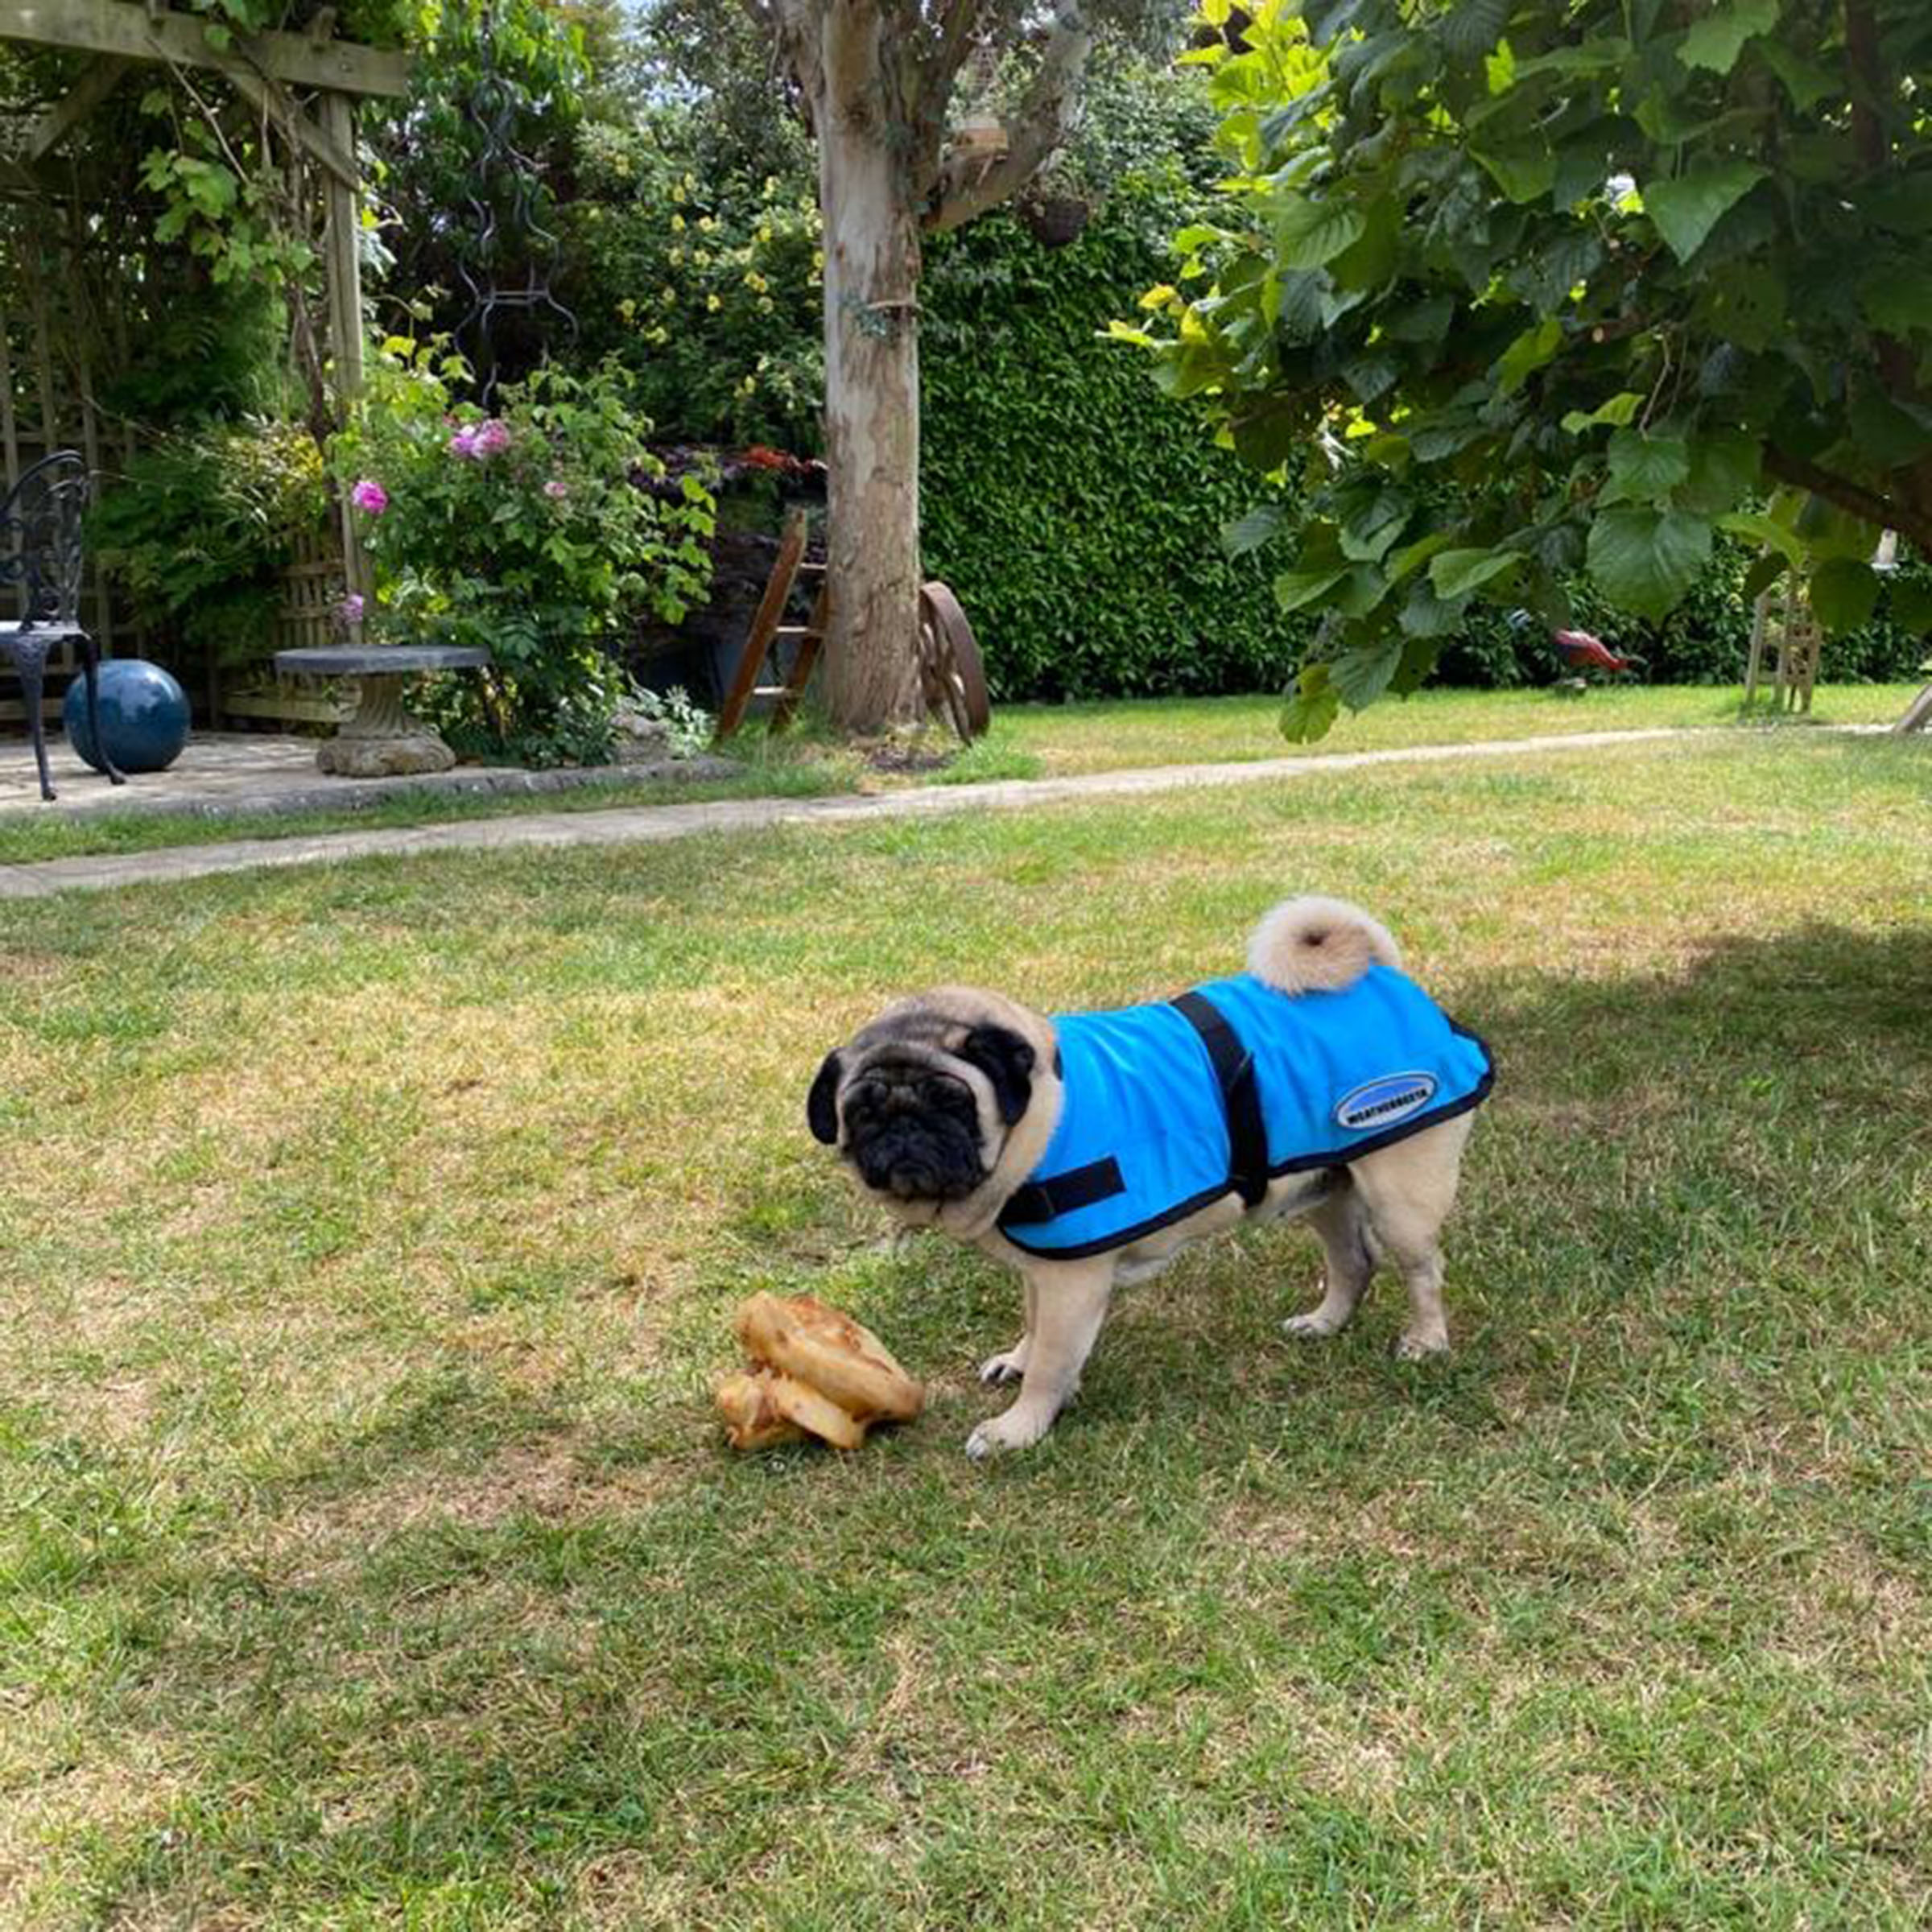 Product Review: Cooling Dog Coat